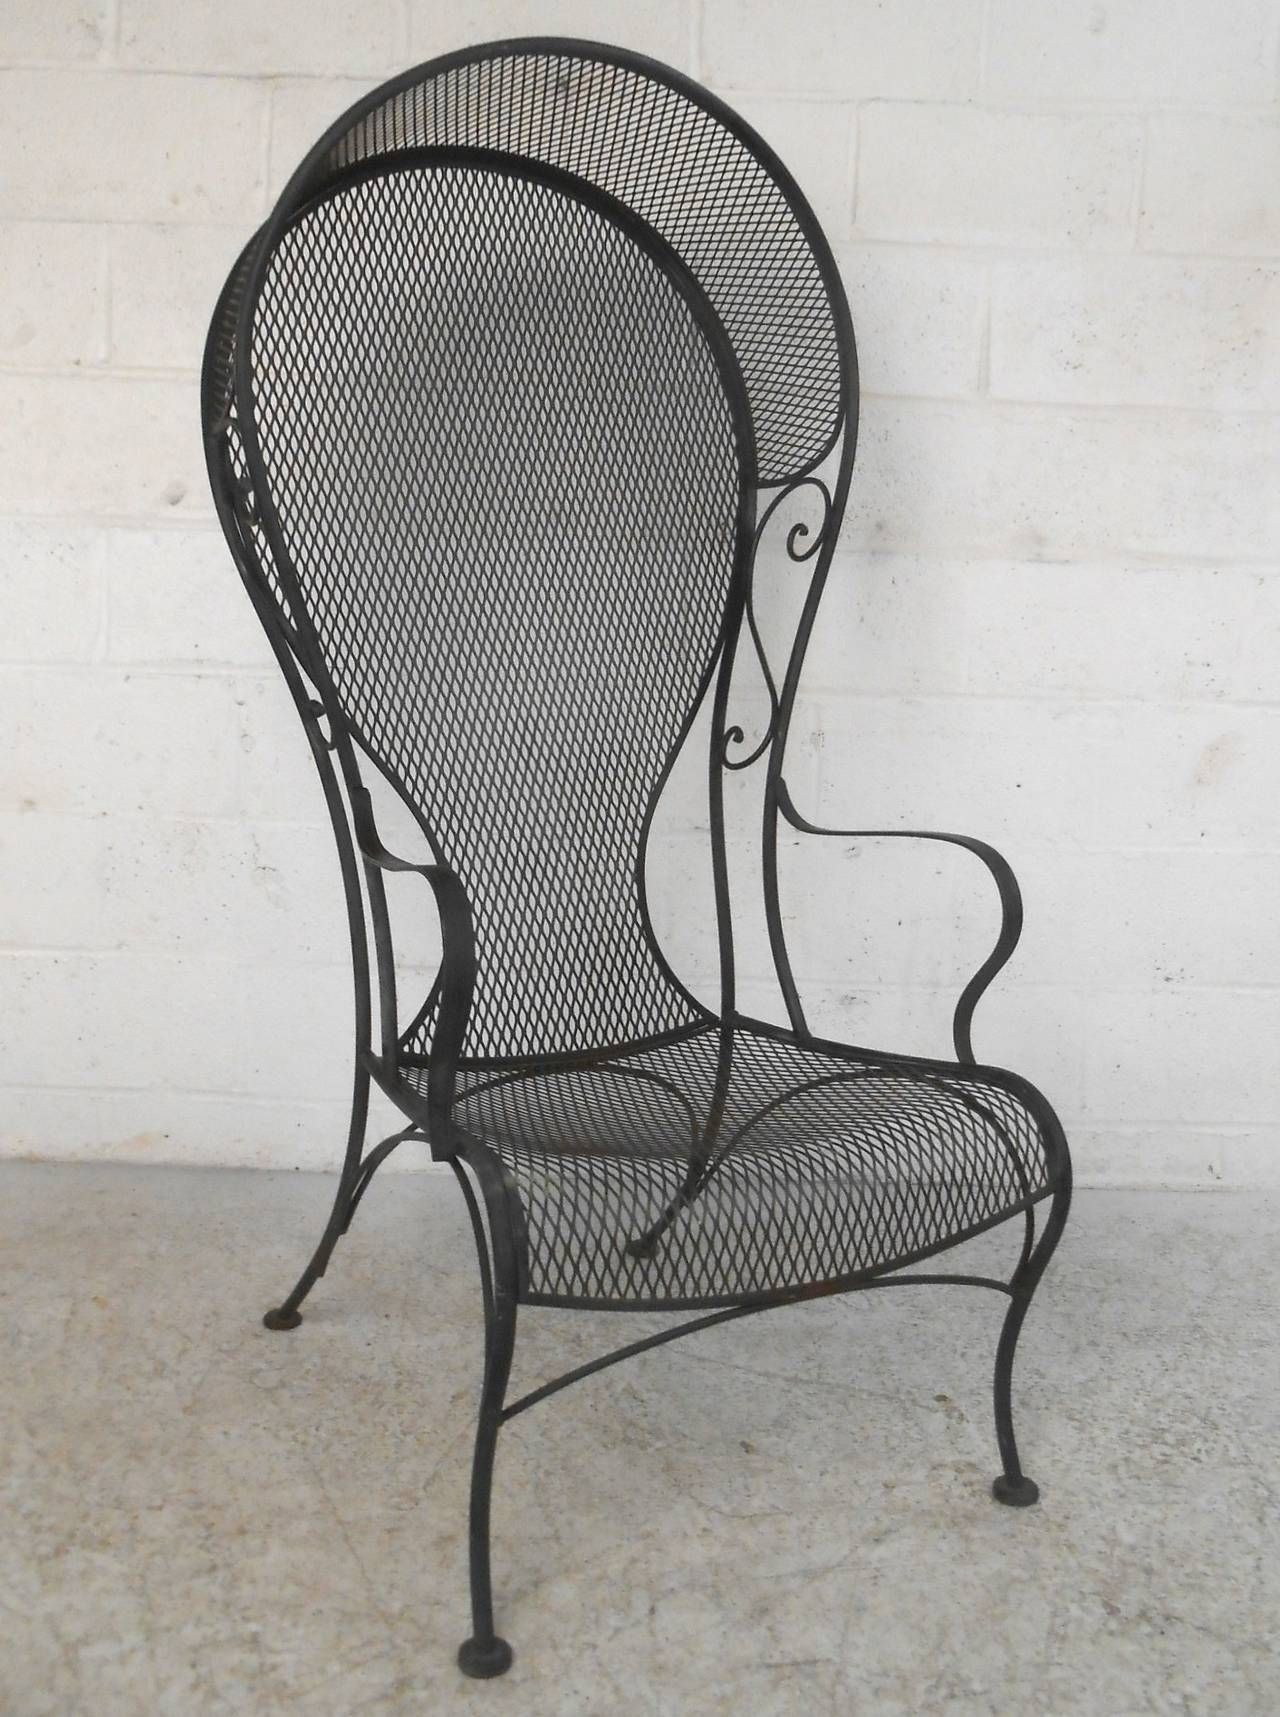 unique russell woodard style patio chair from a unique collection of antique and modern garden